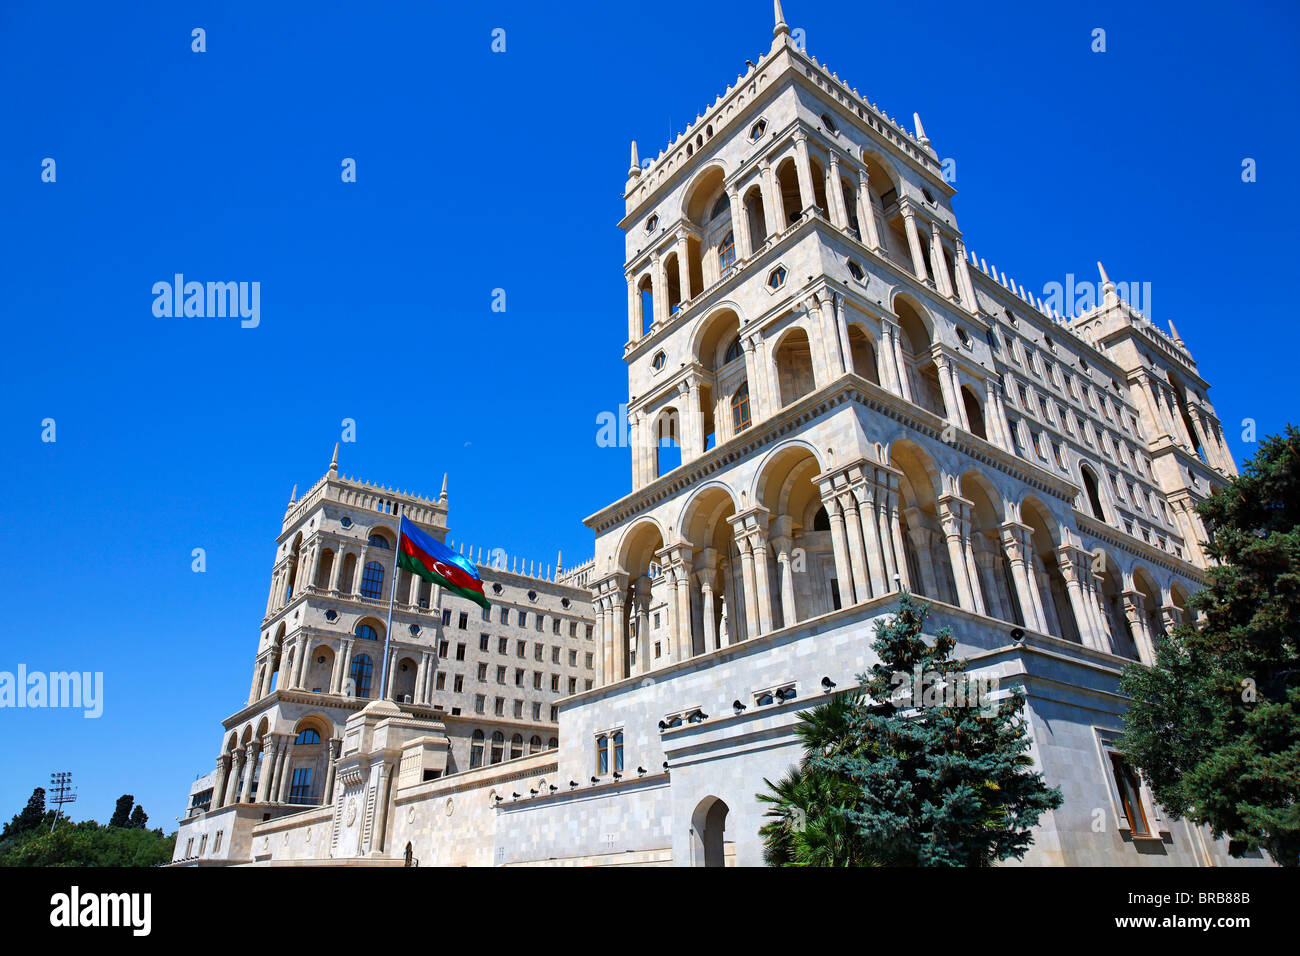 Dom Soviet, the building from which Azerbaijan was governed during the Soviet era, Baku, Azerbaijan - Stock Image